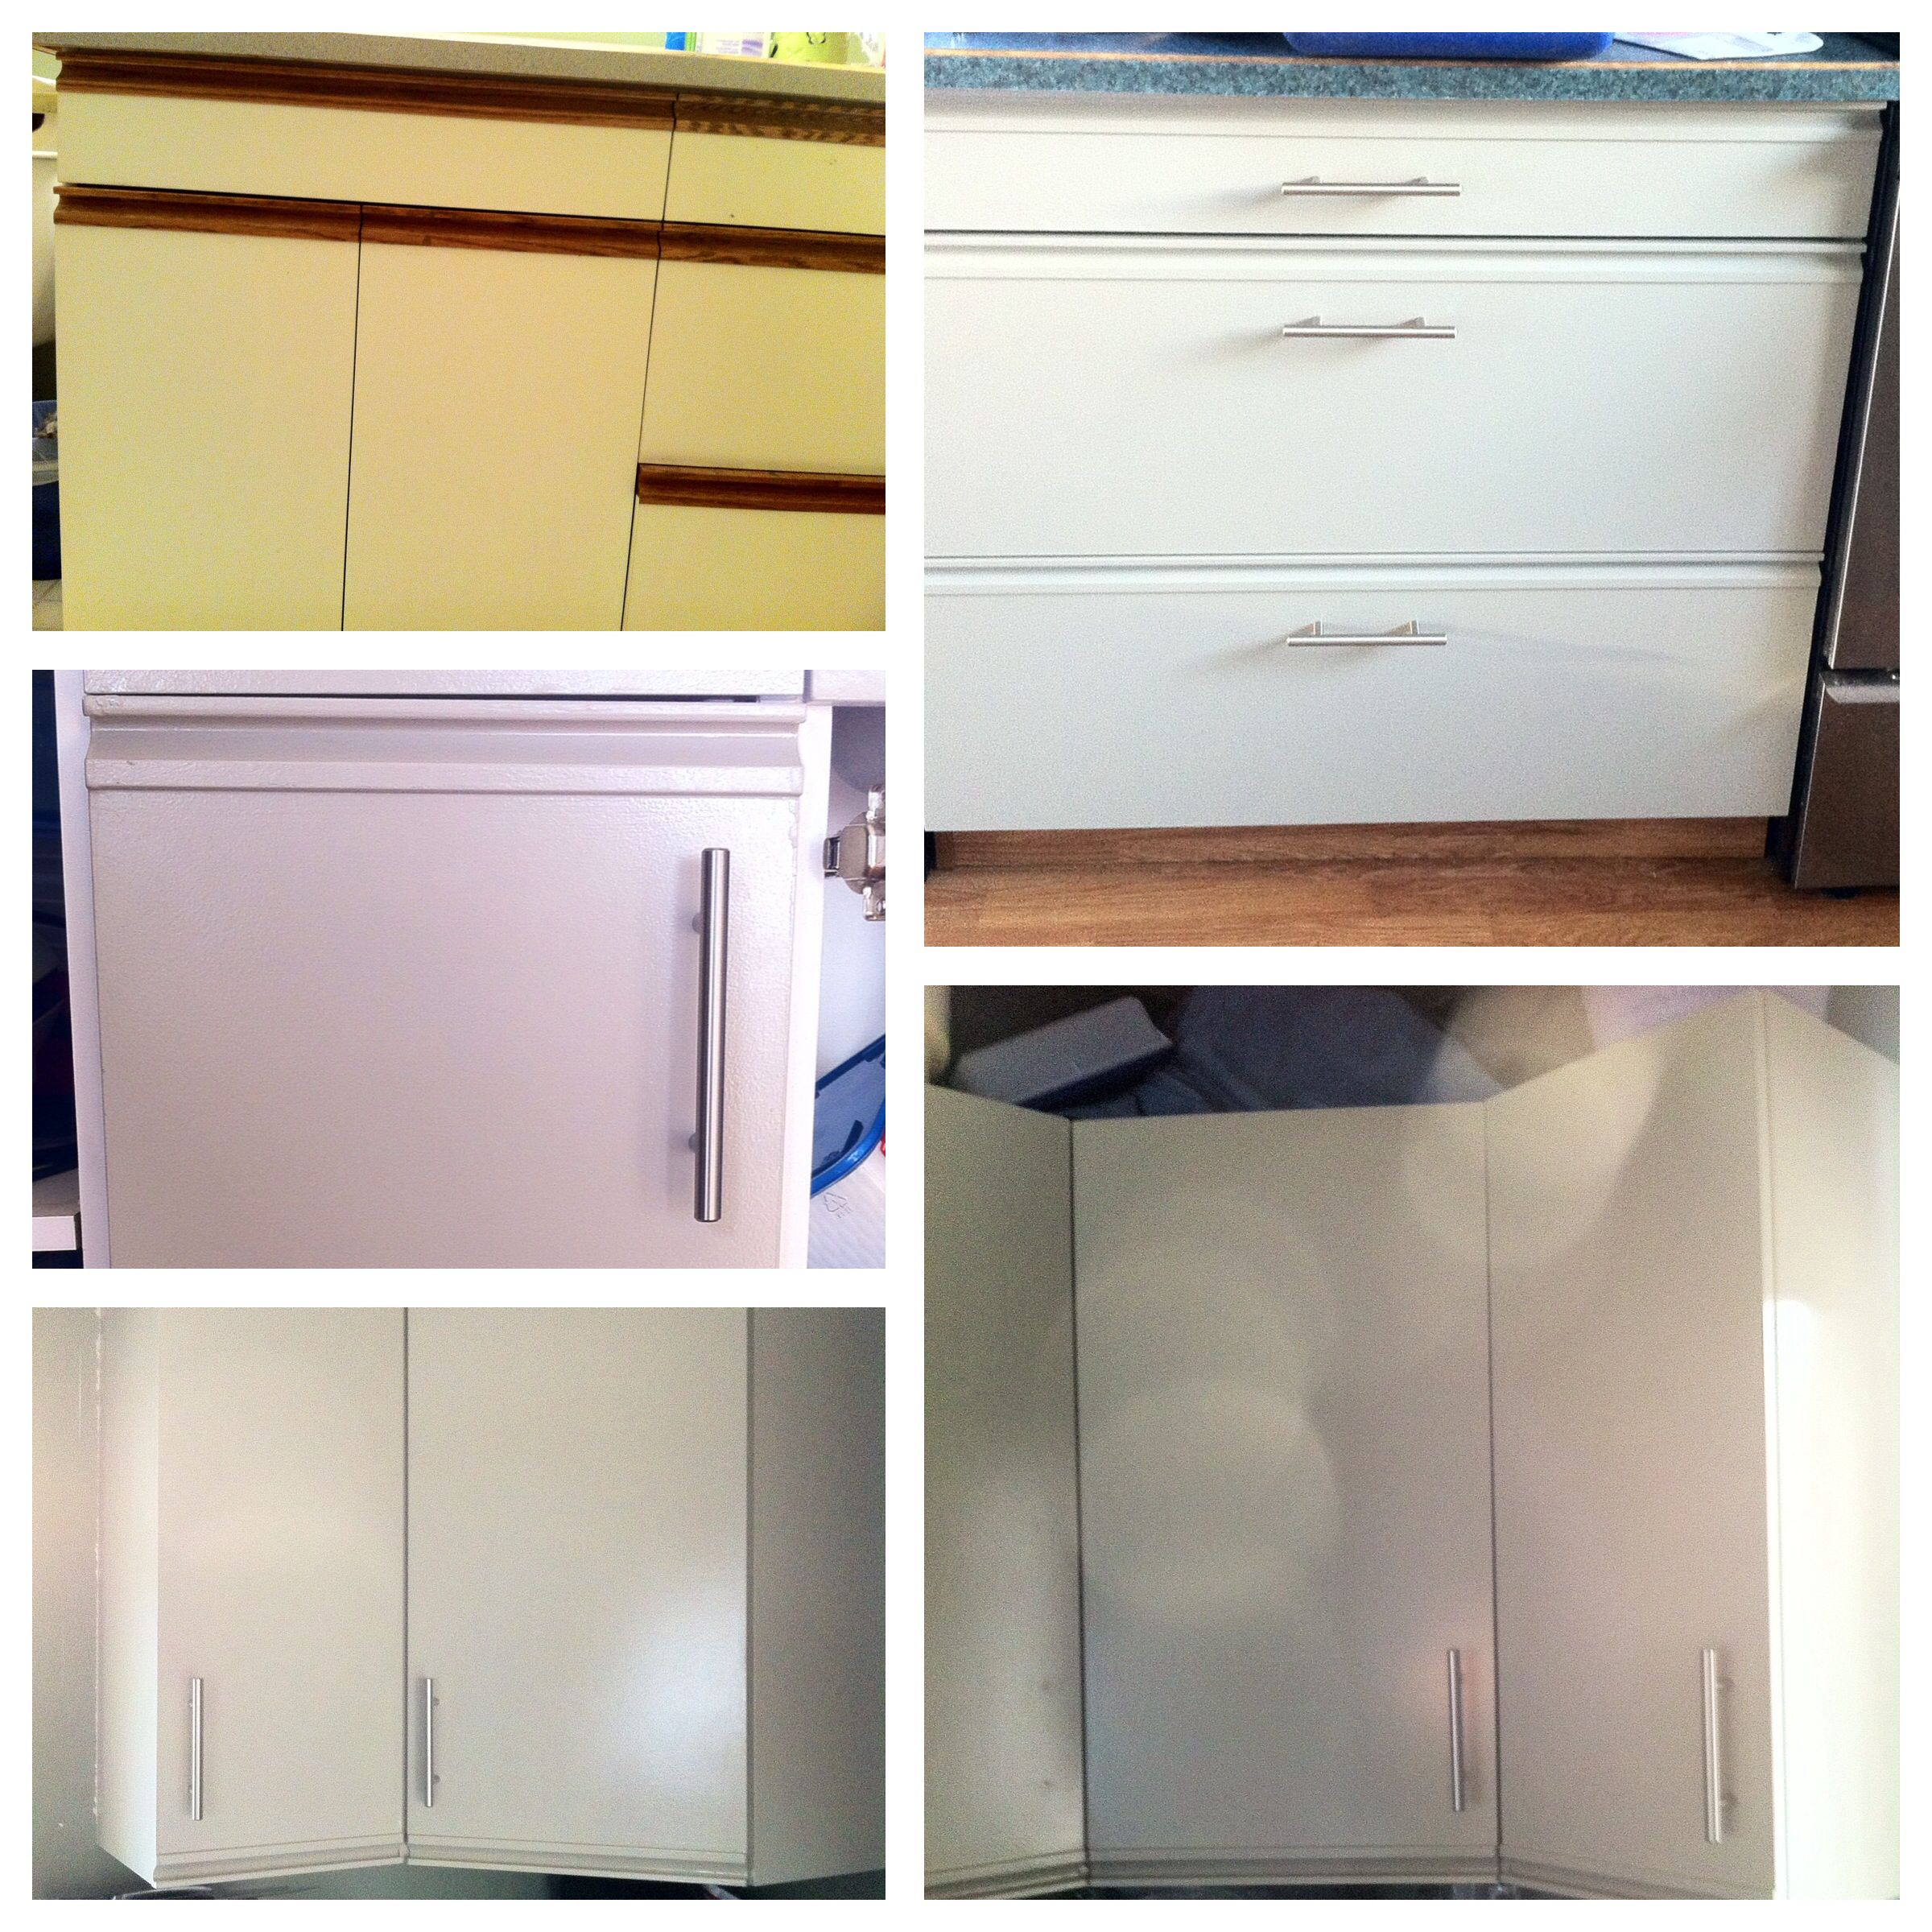 How To Update Laminate Kitchen Cabinets Diy Painted Cabinets Painting Laminate Melamine Kitchen